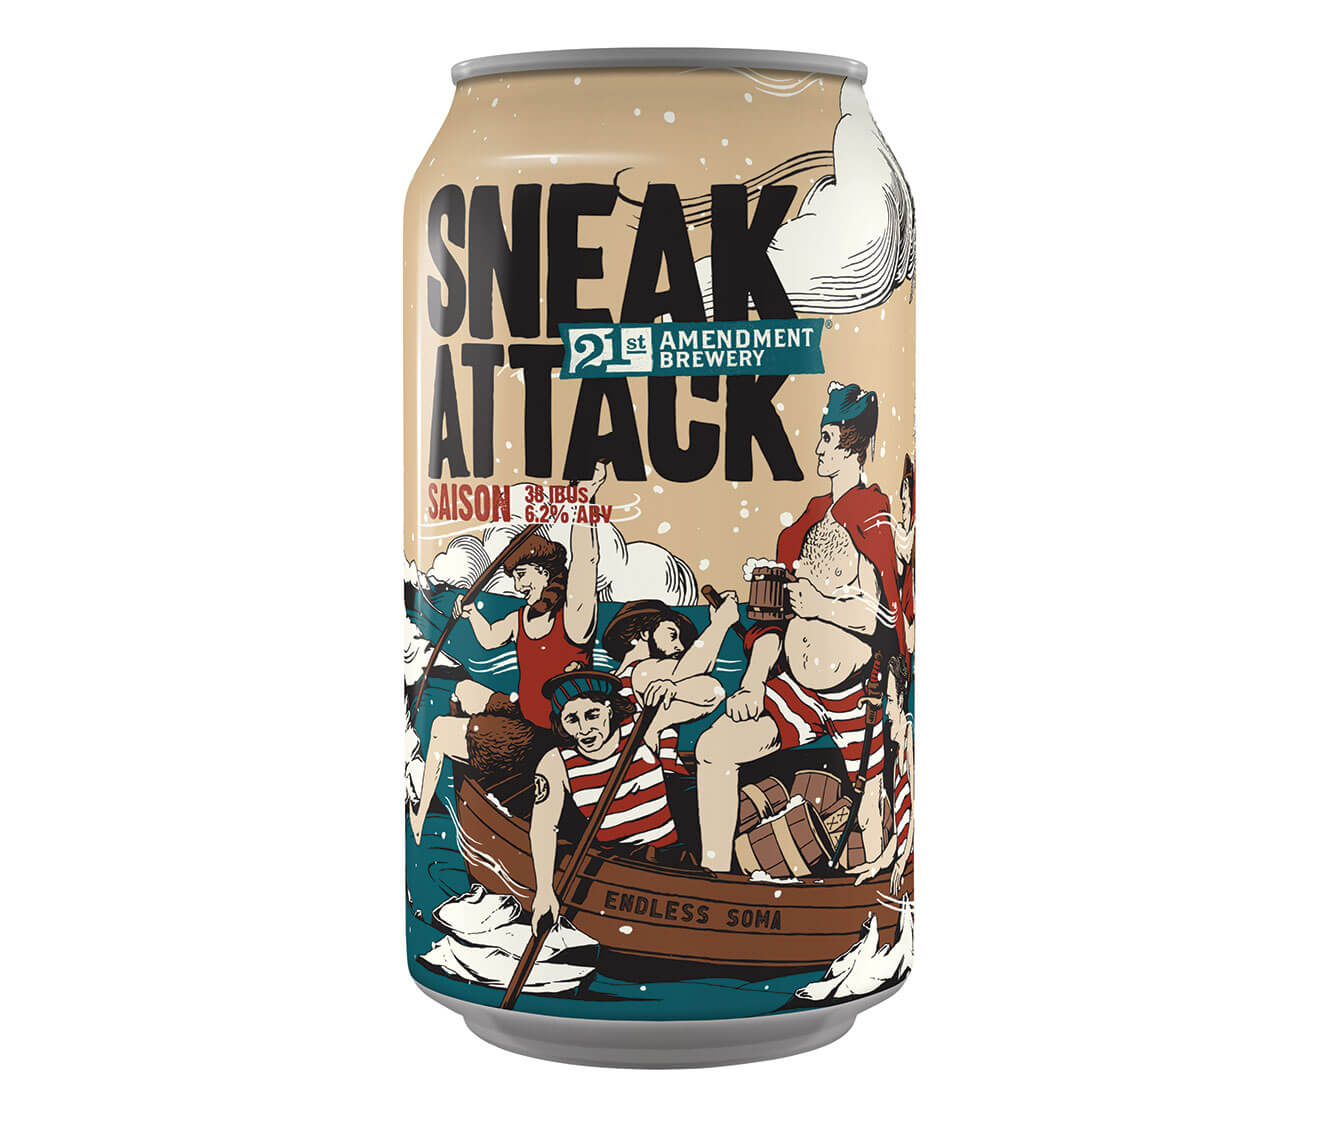 21st Amendment Brewing Sneak Attack, can on white